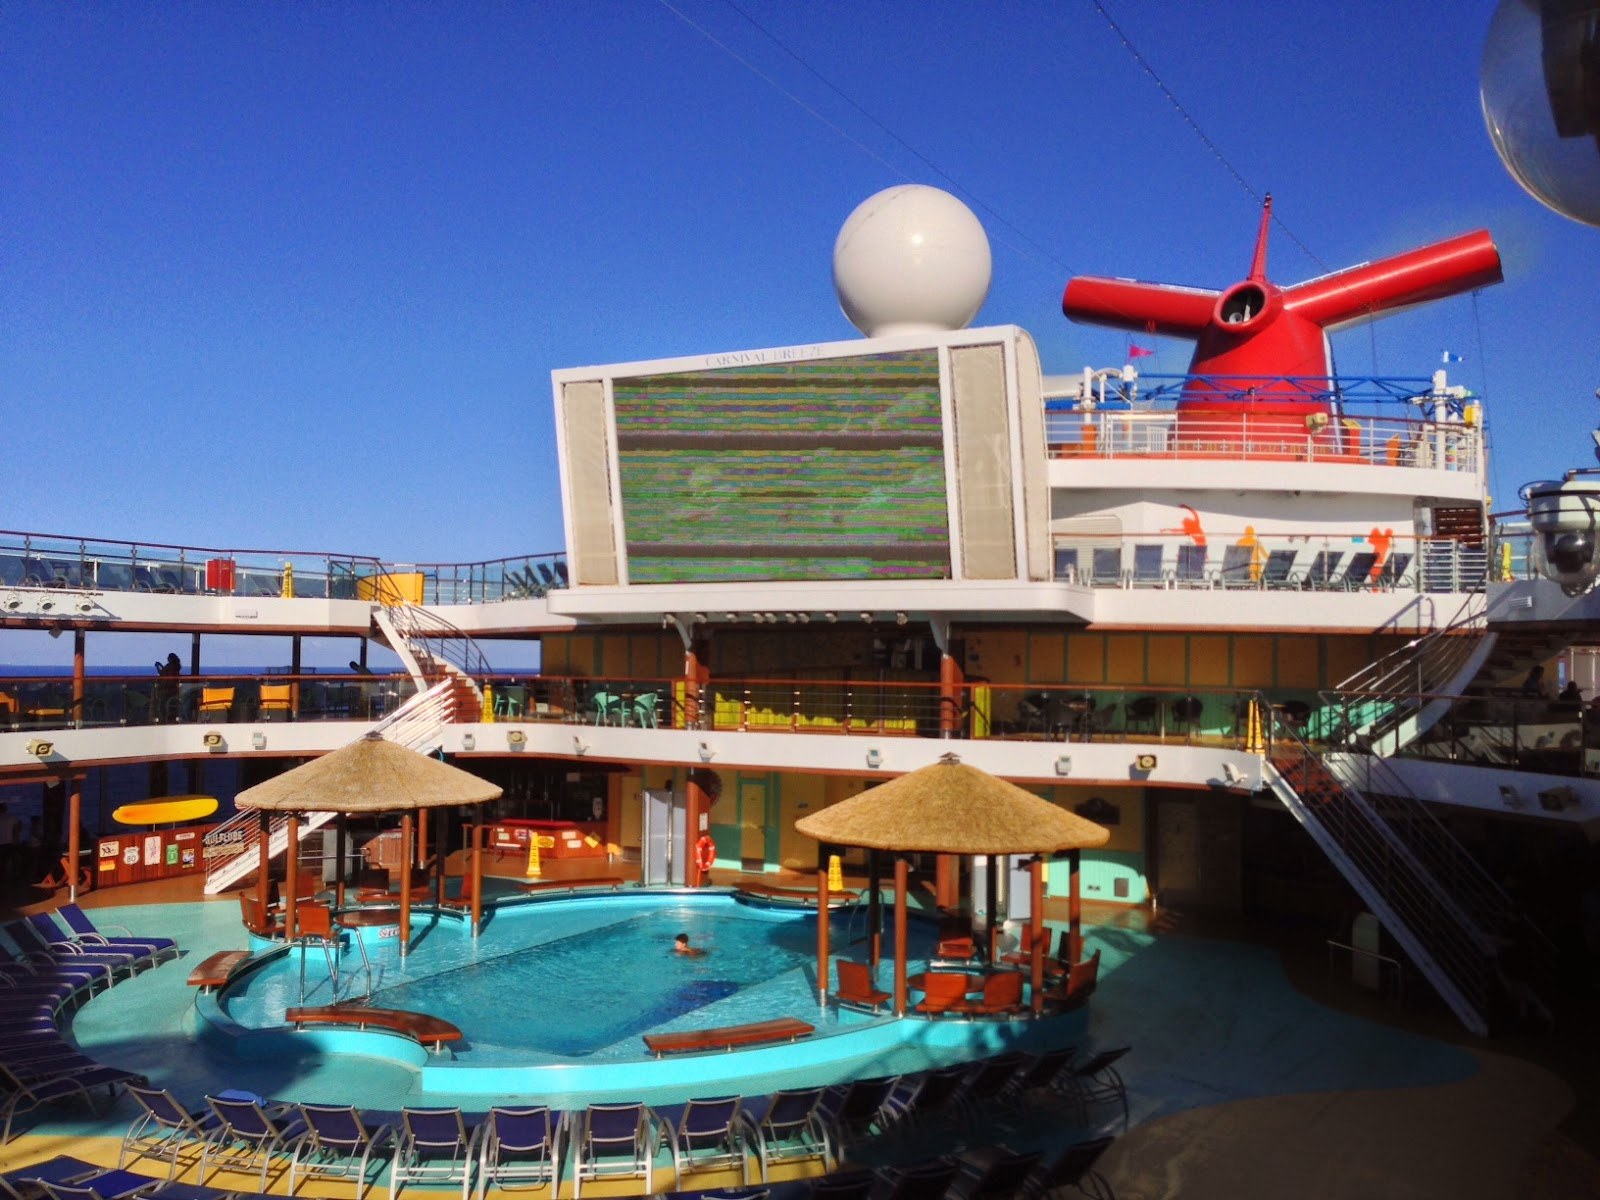 Life In The Barbie Dream House Carnival Breeze Vacation Review - Cruise ship pool table